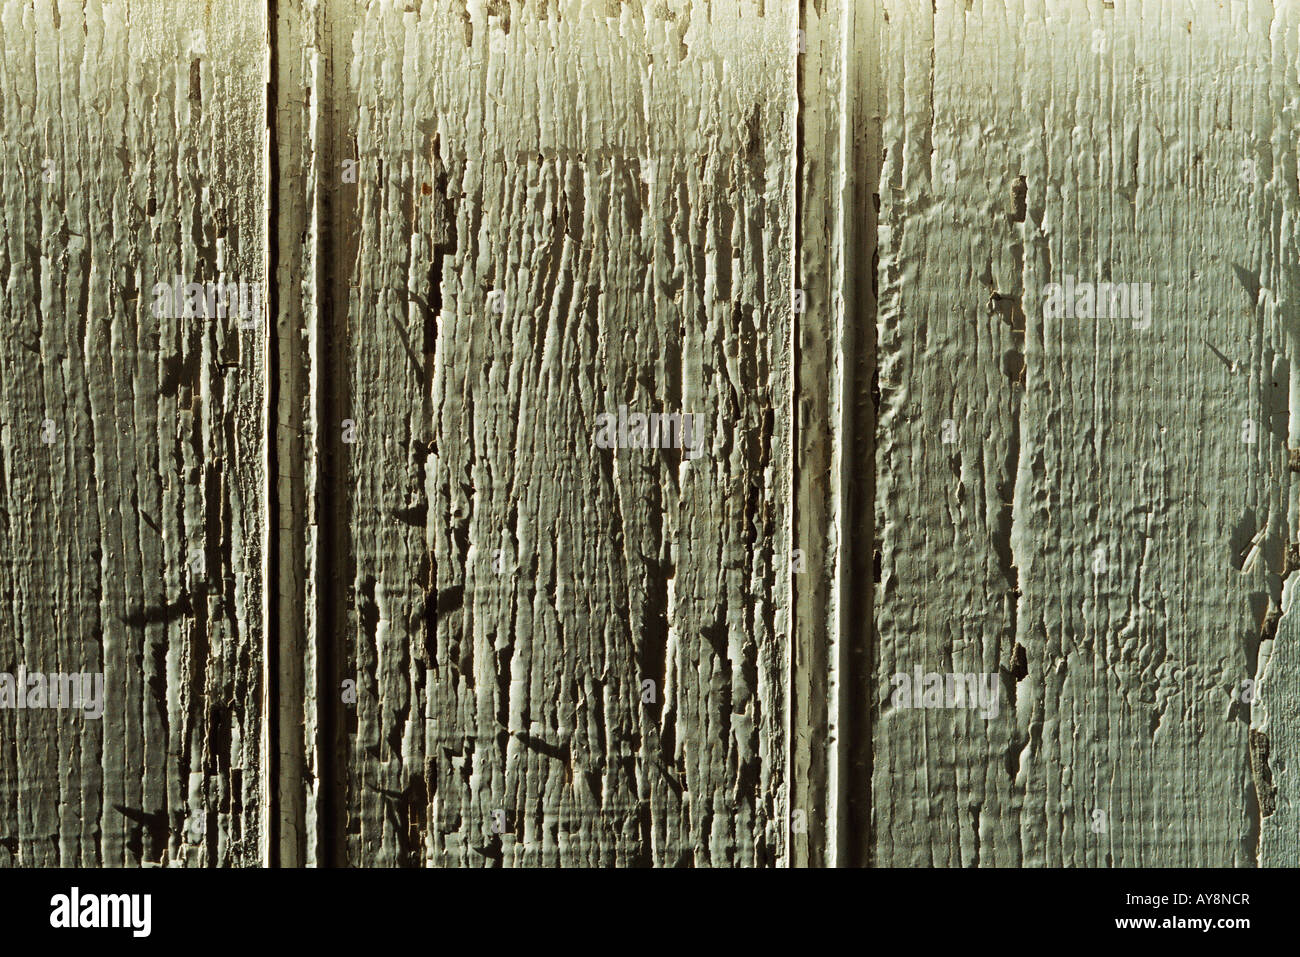 Painted wood, close-up, full frame - Stock Image